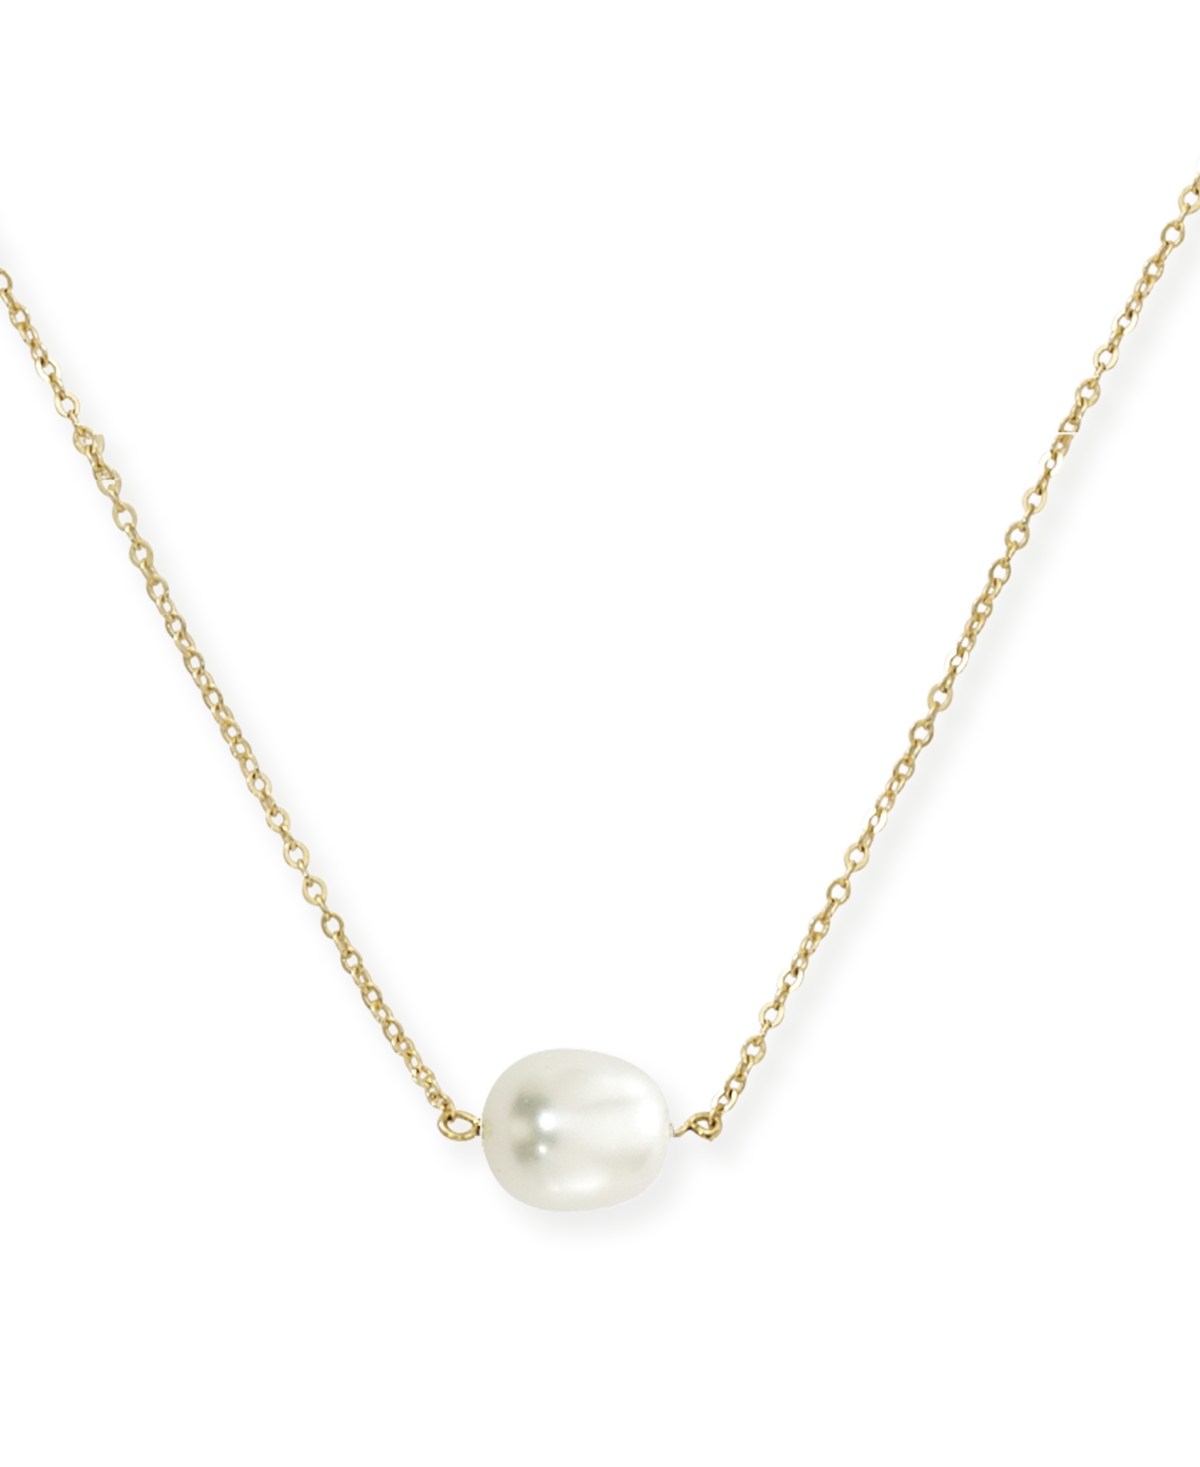 Single Pearl (10 x 8 mm) Necklace Set in 14k Yellow Gold